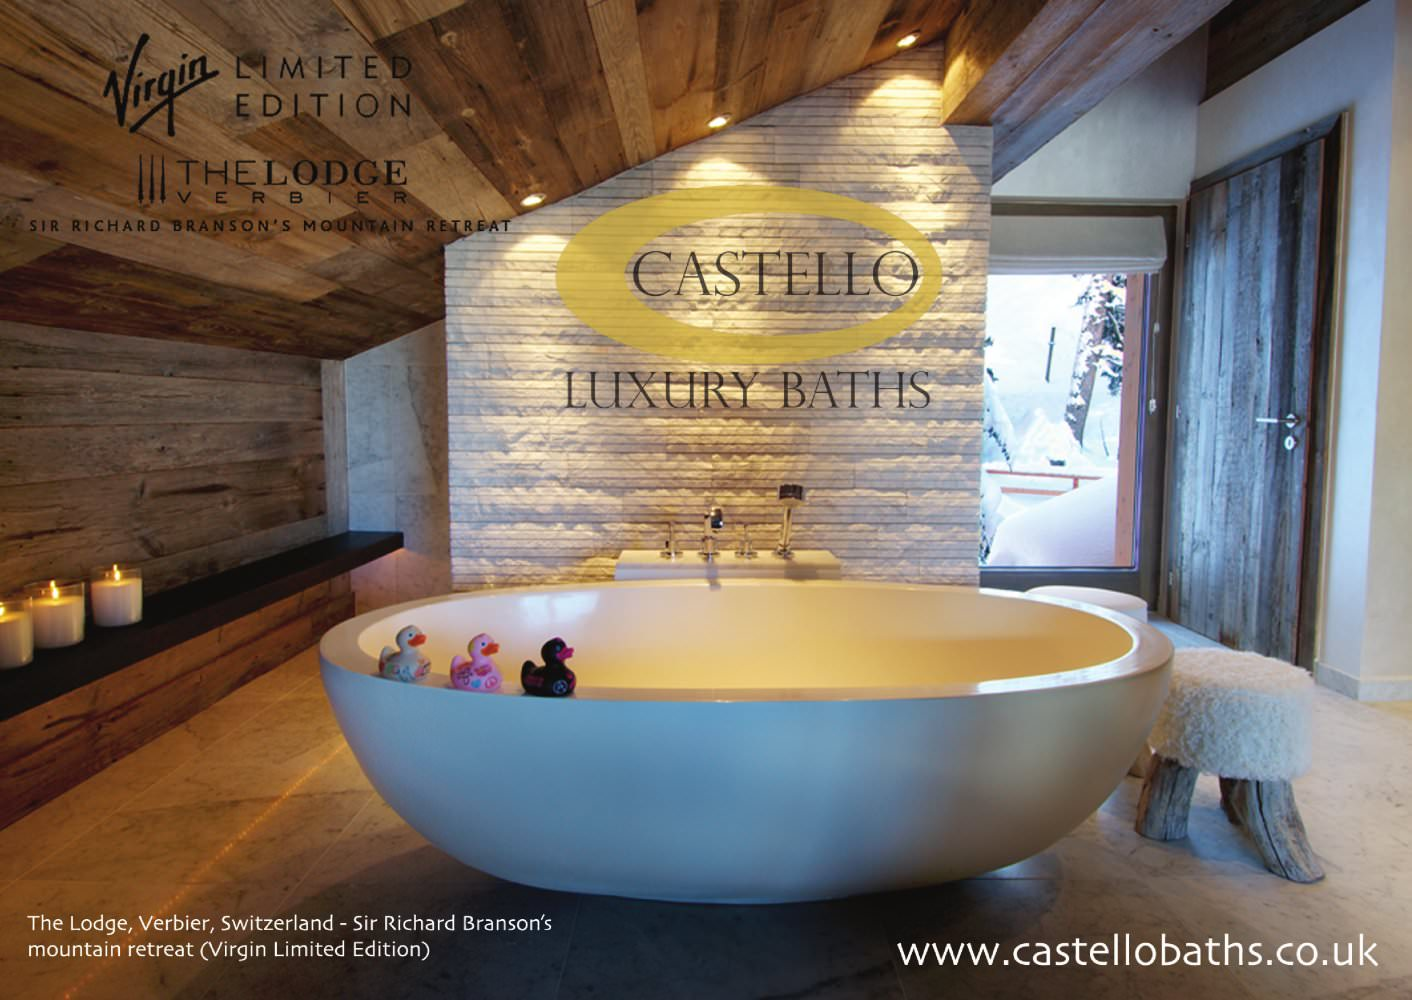 Castello Luxury Baths - Castello Luxury Baths - PDF Catalogues ...